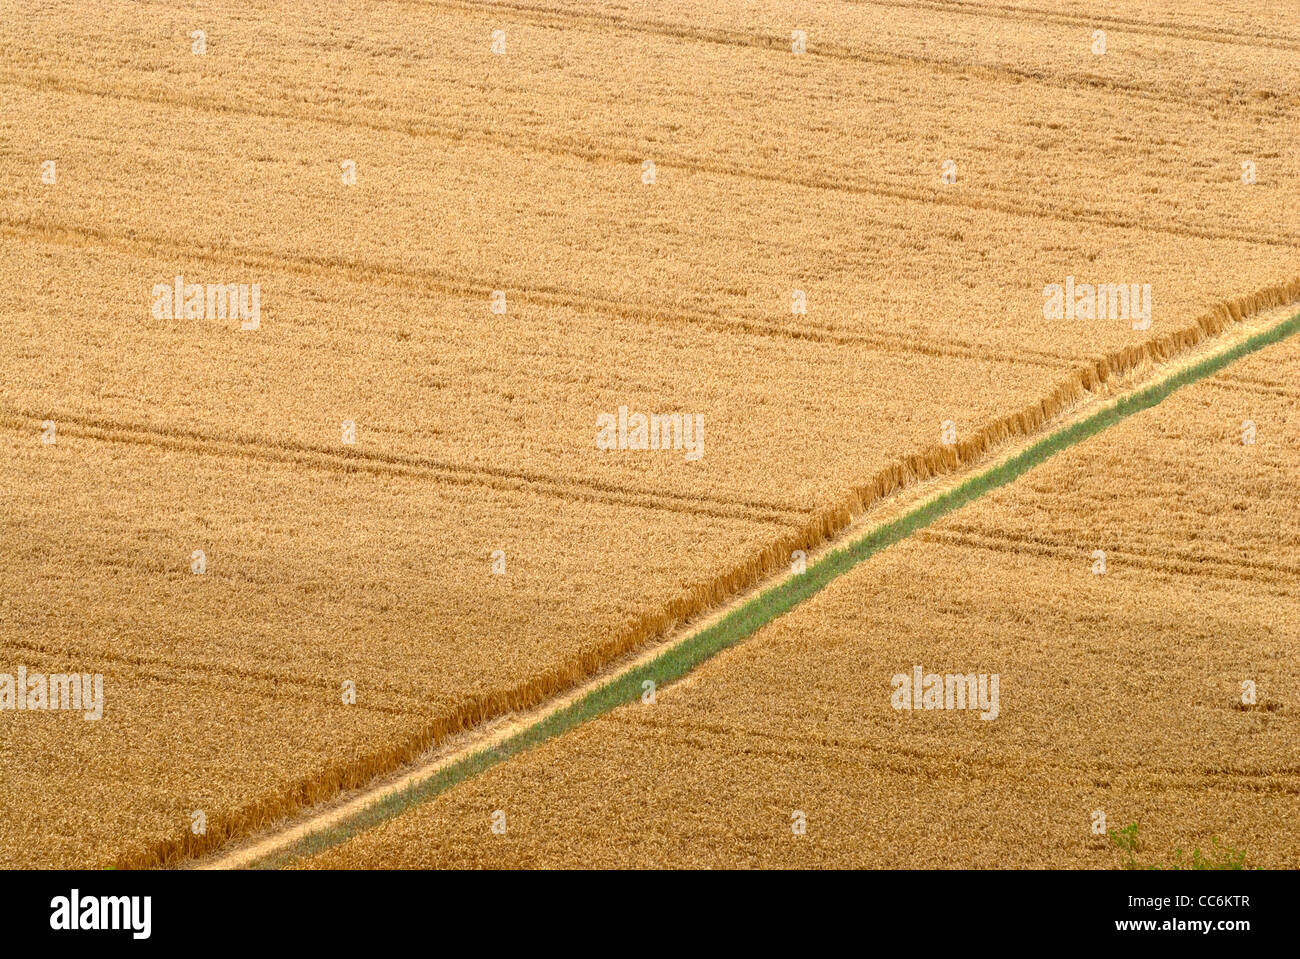 Wanderweg durch Bauern Feld, (North Downs Way), Kent, England, uk Stockfoto